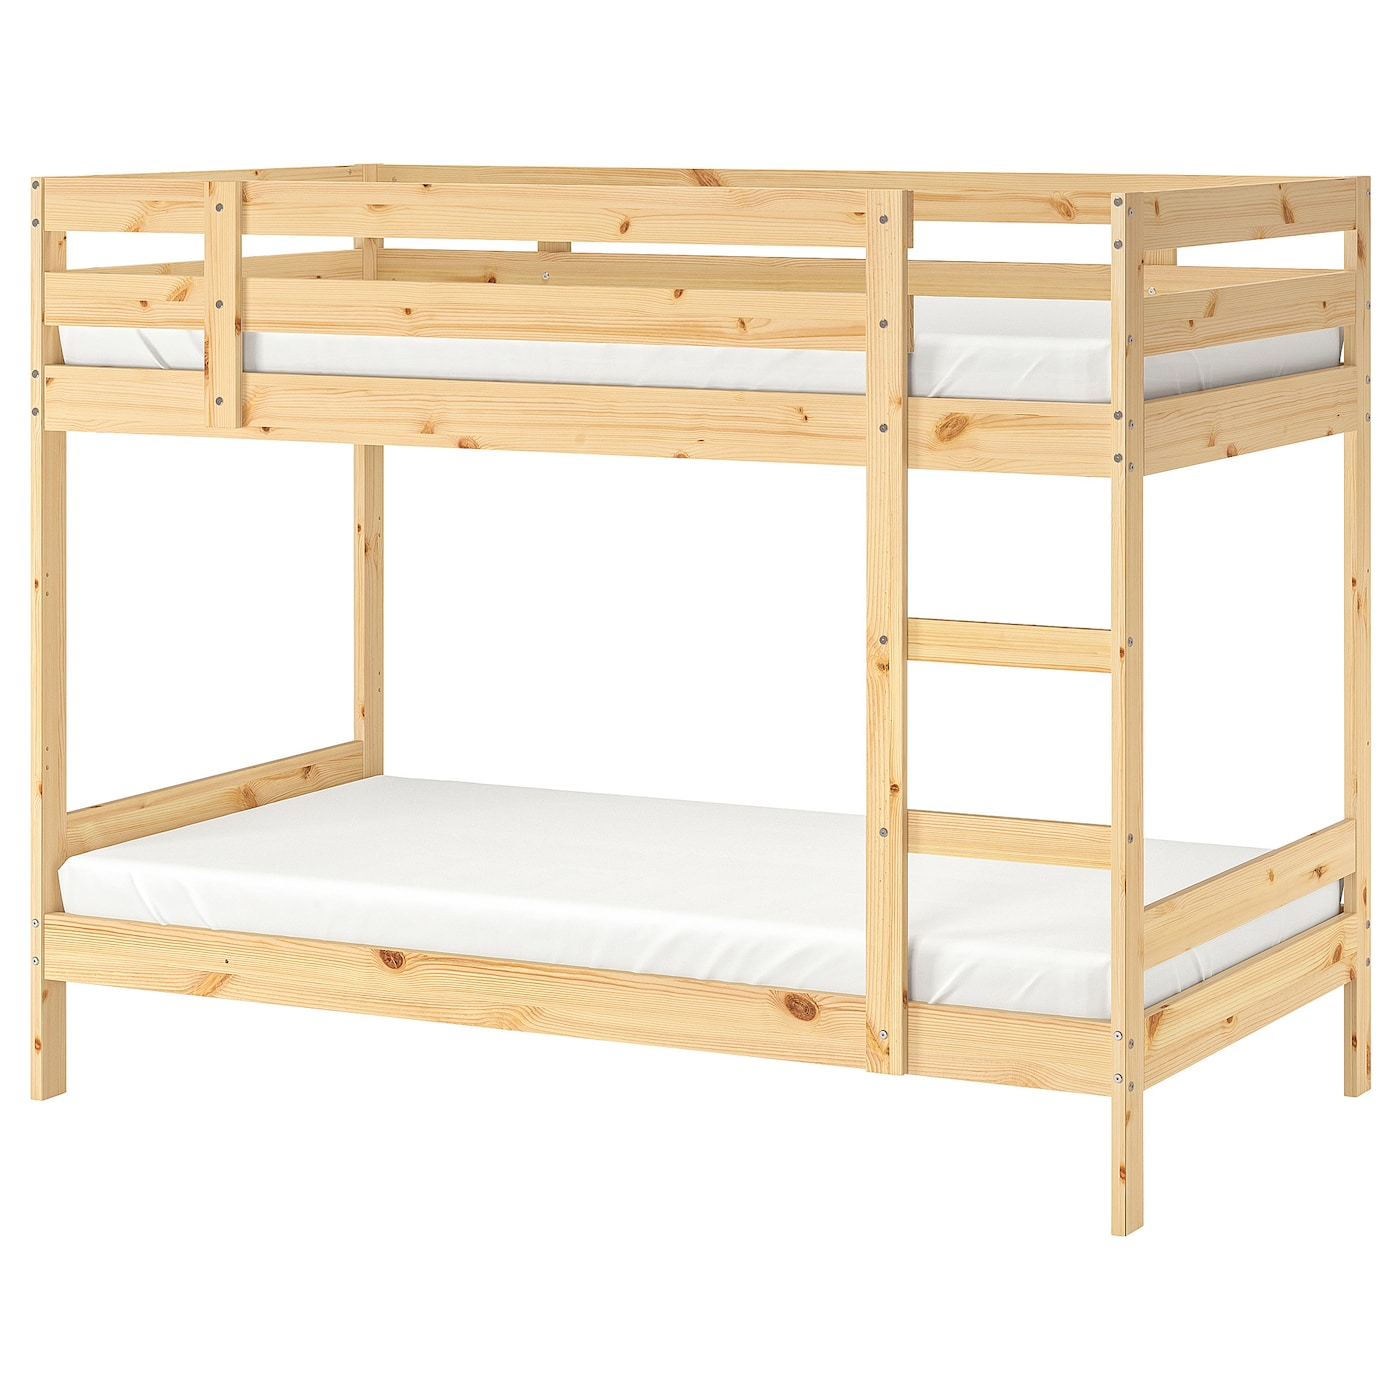 bunk beds - wooden & metal bunk beds with stairs - ikea